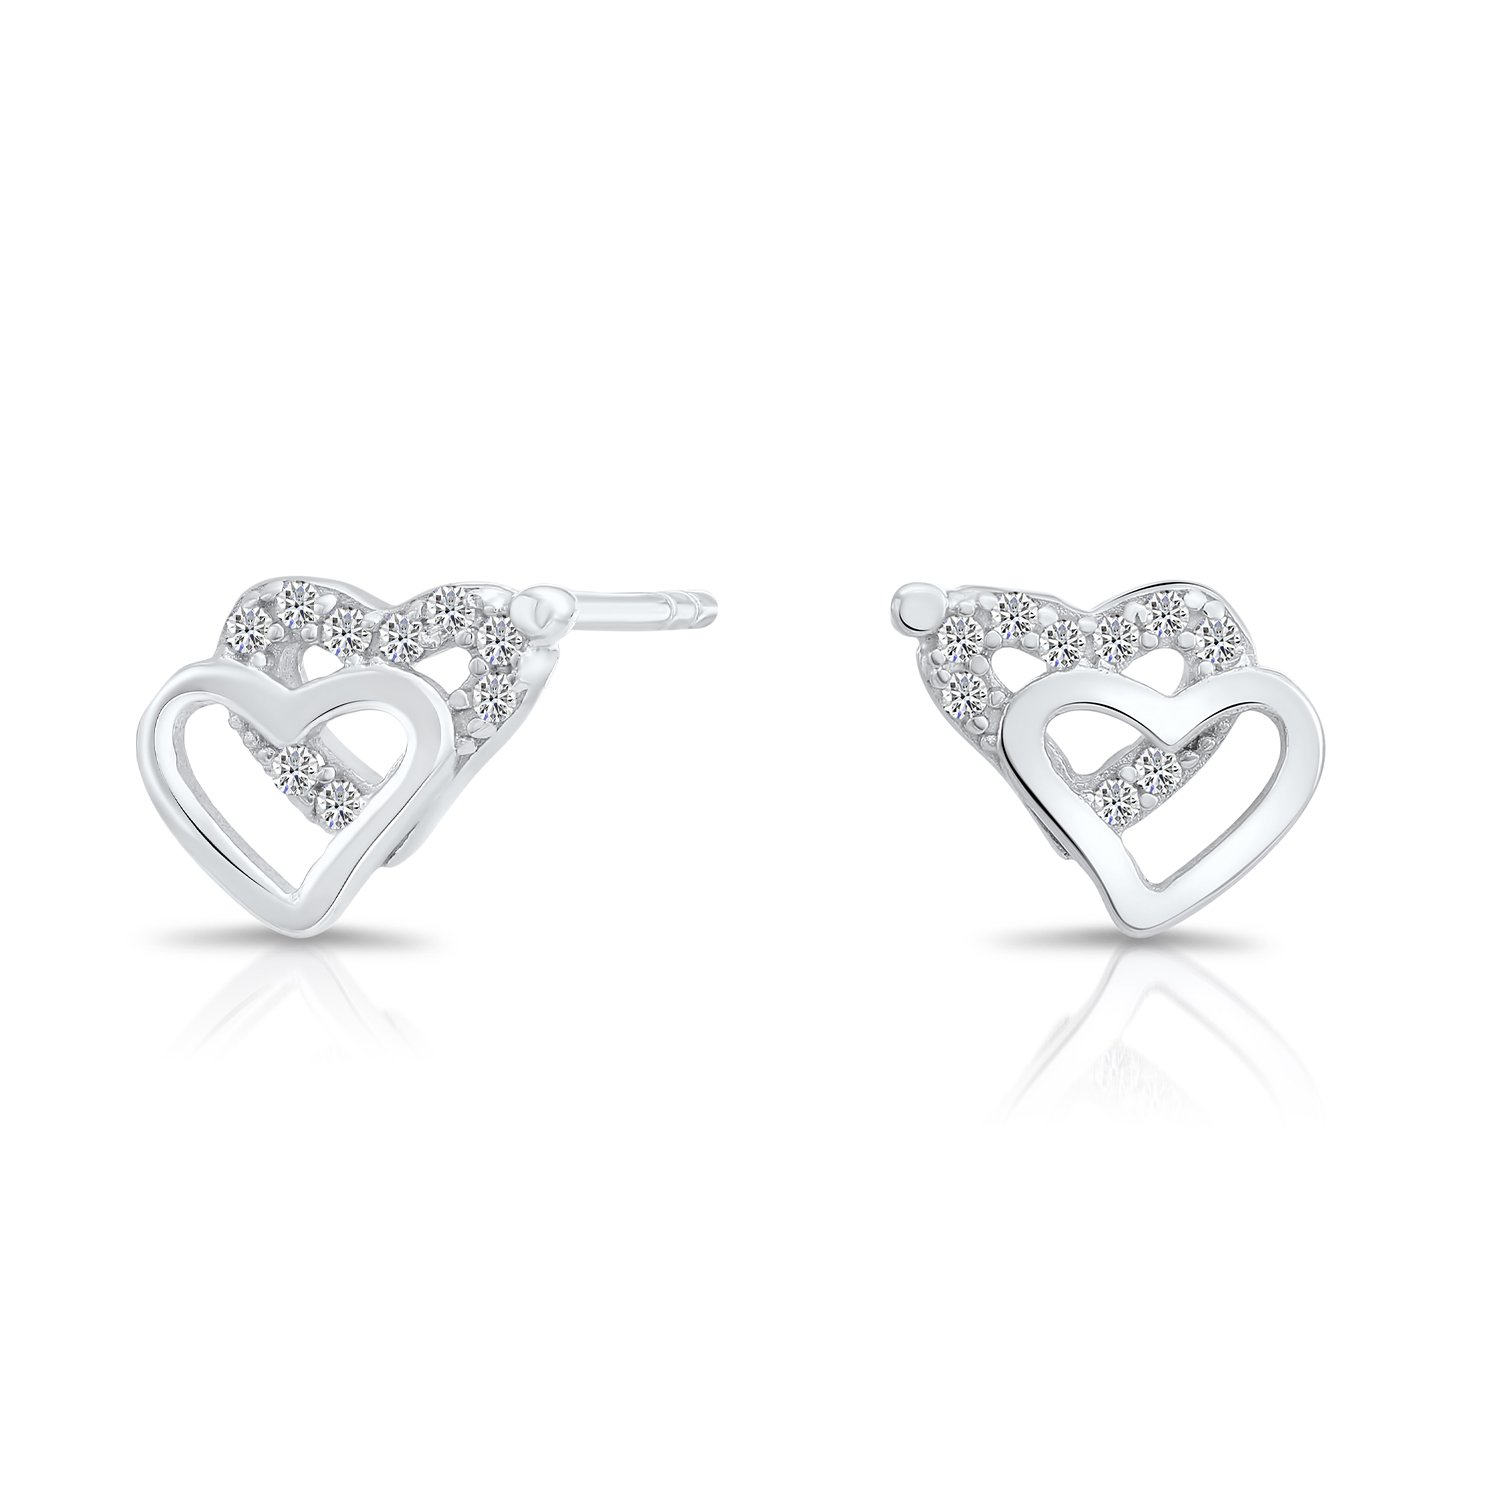 Tiny Sterling Silver Double Heart Stud Earrings with Cubic Zirconia